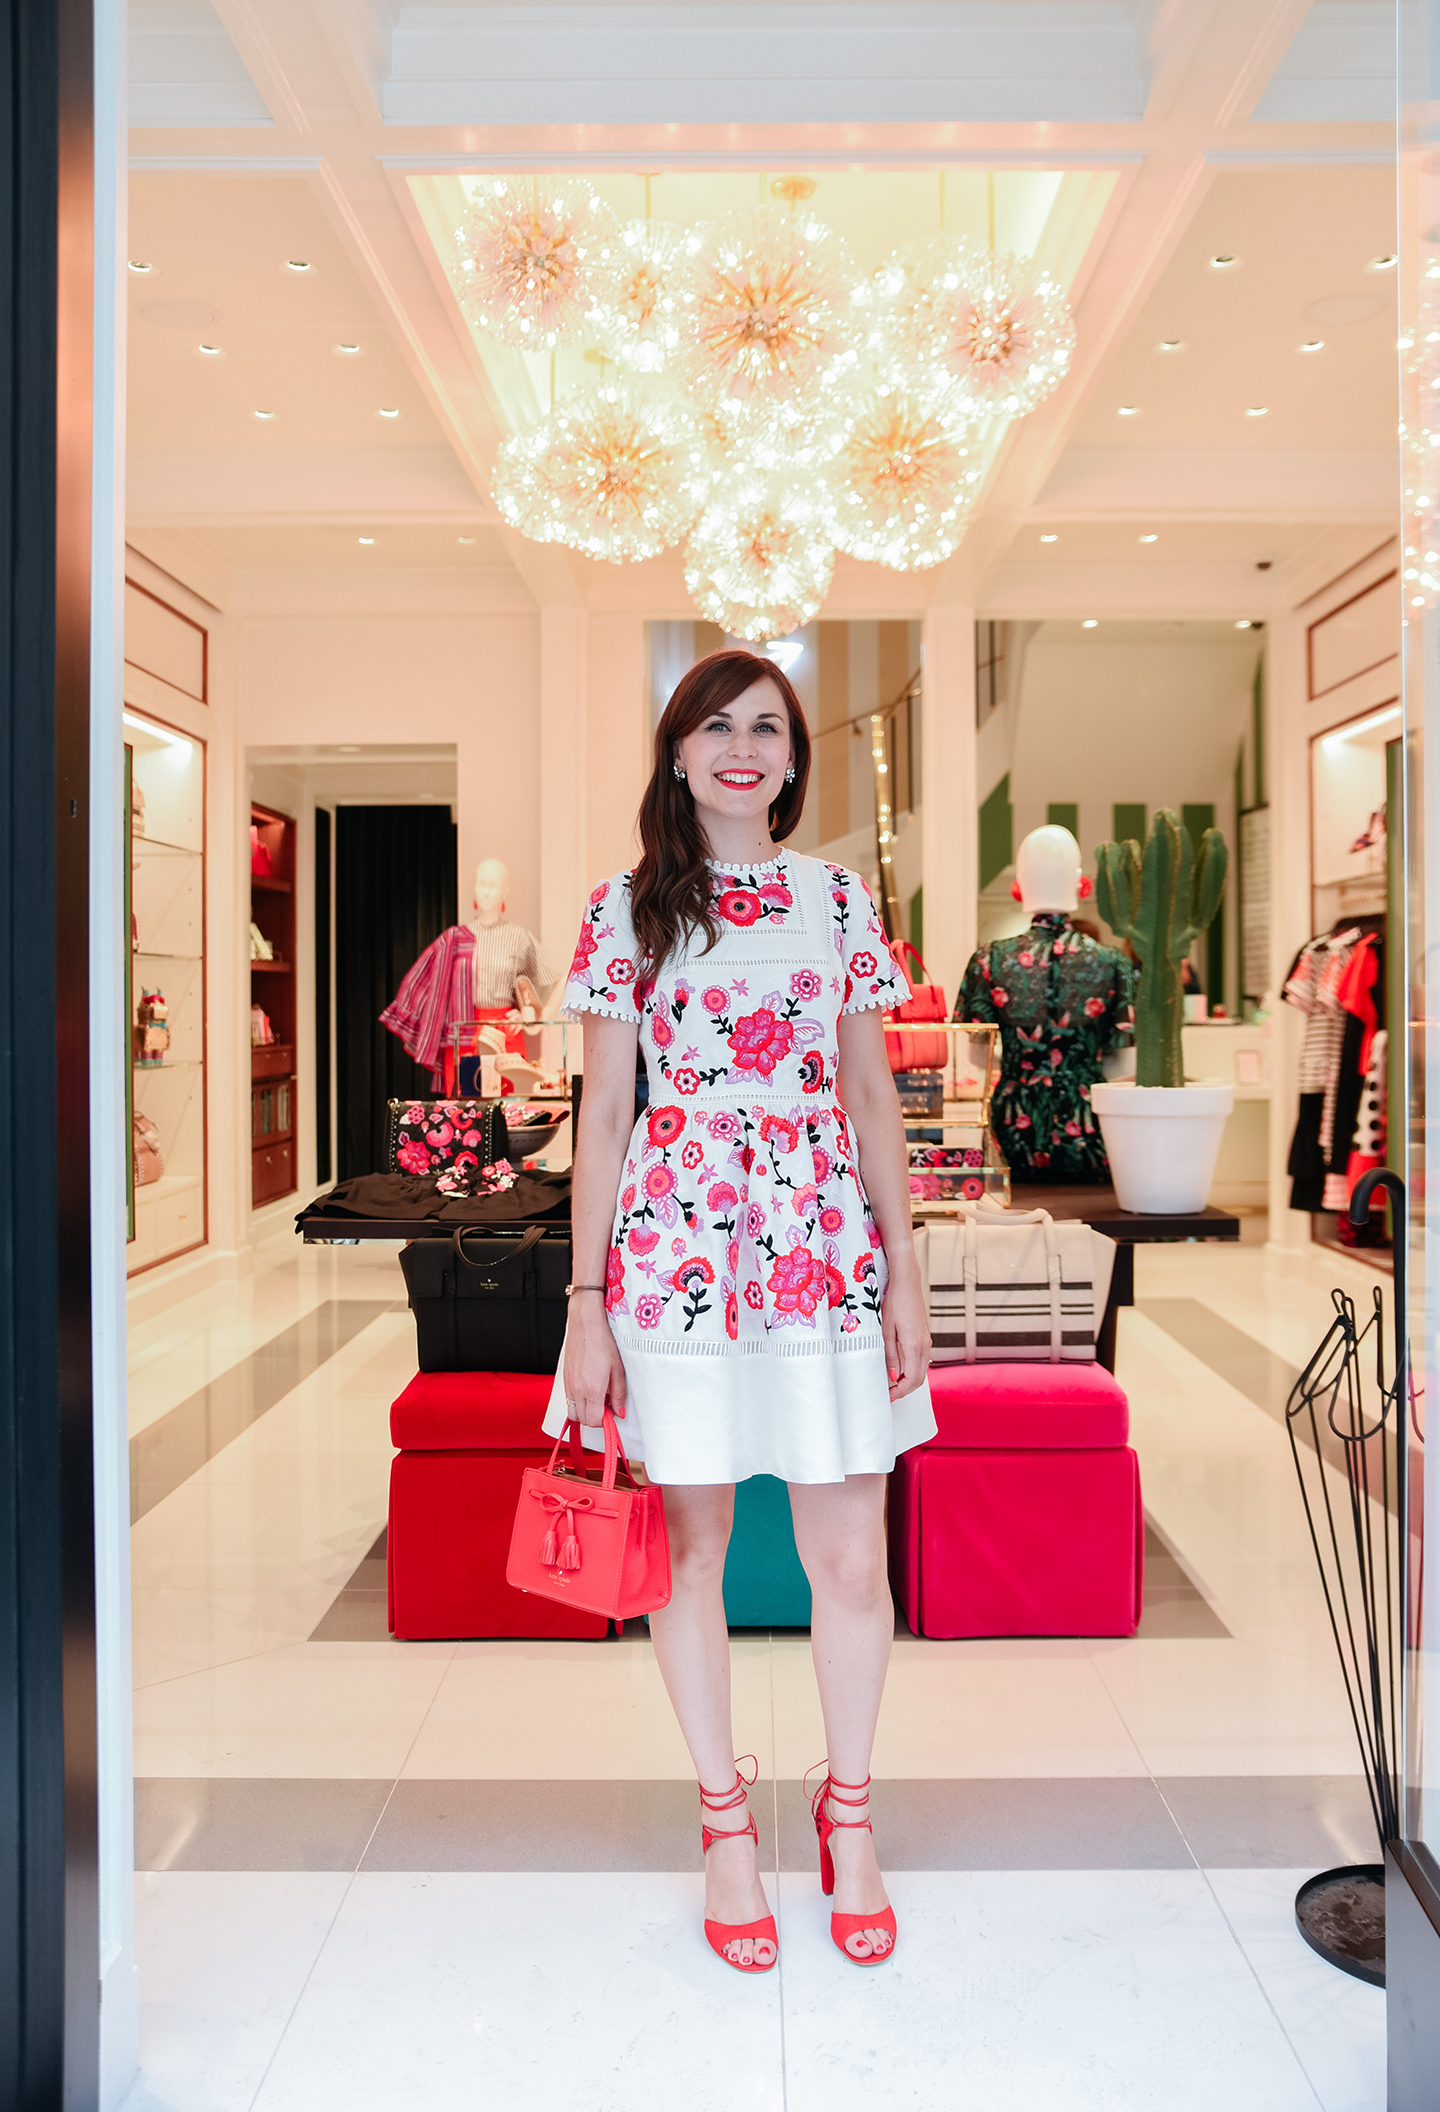 Blog-Mode-And-The-City-Lifestyle-Kate-Spade-Paris-418-rue-saint-honore-12